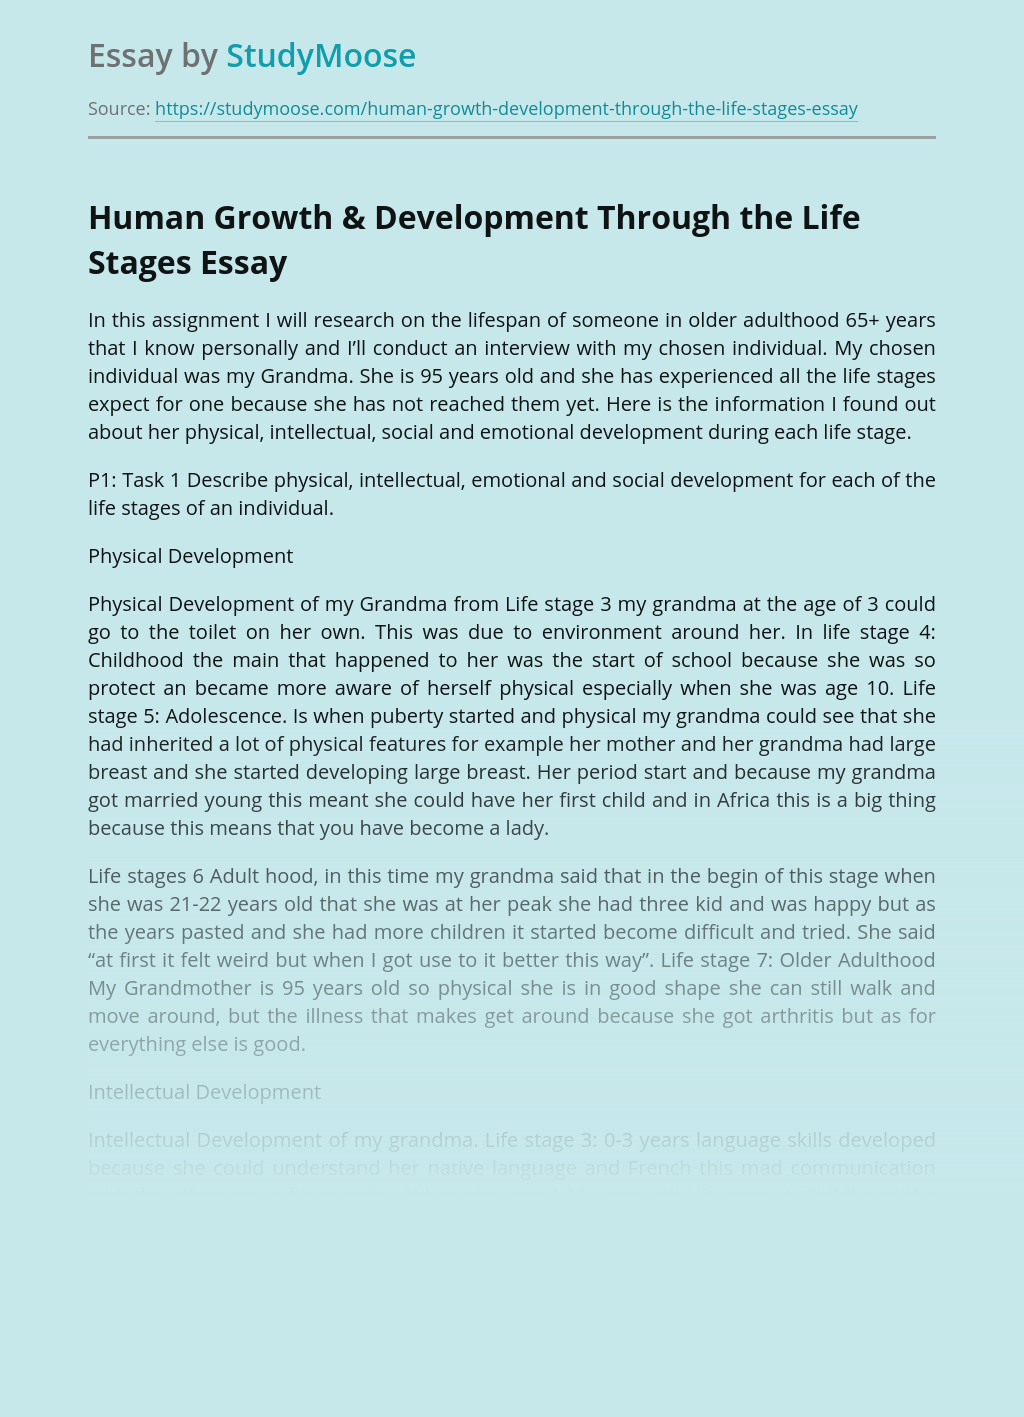 Human Growth & Development Through the Life Stages